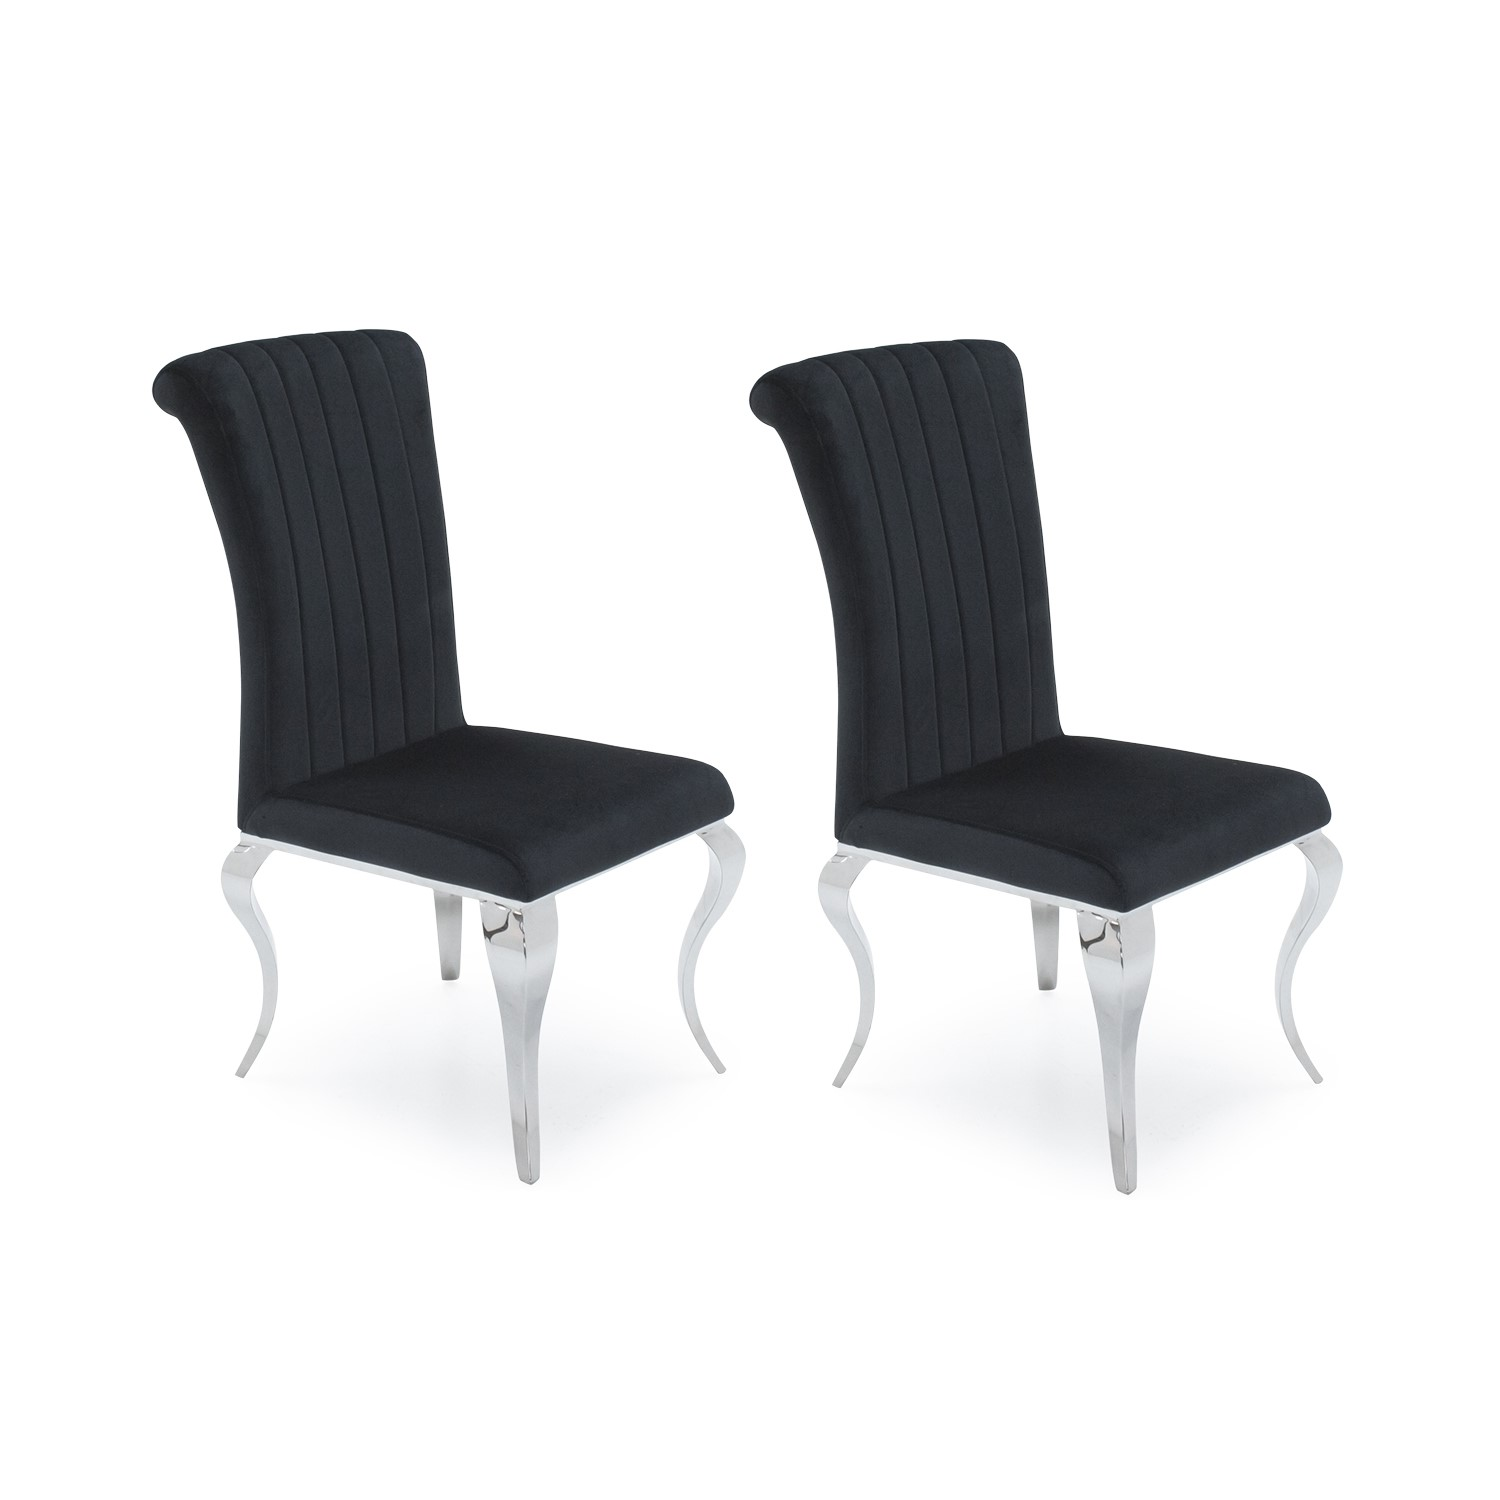 Nicole Pair Black Velvet Dining Chairs With Chrome ... Part 56